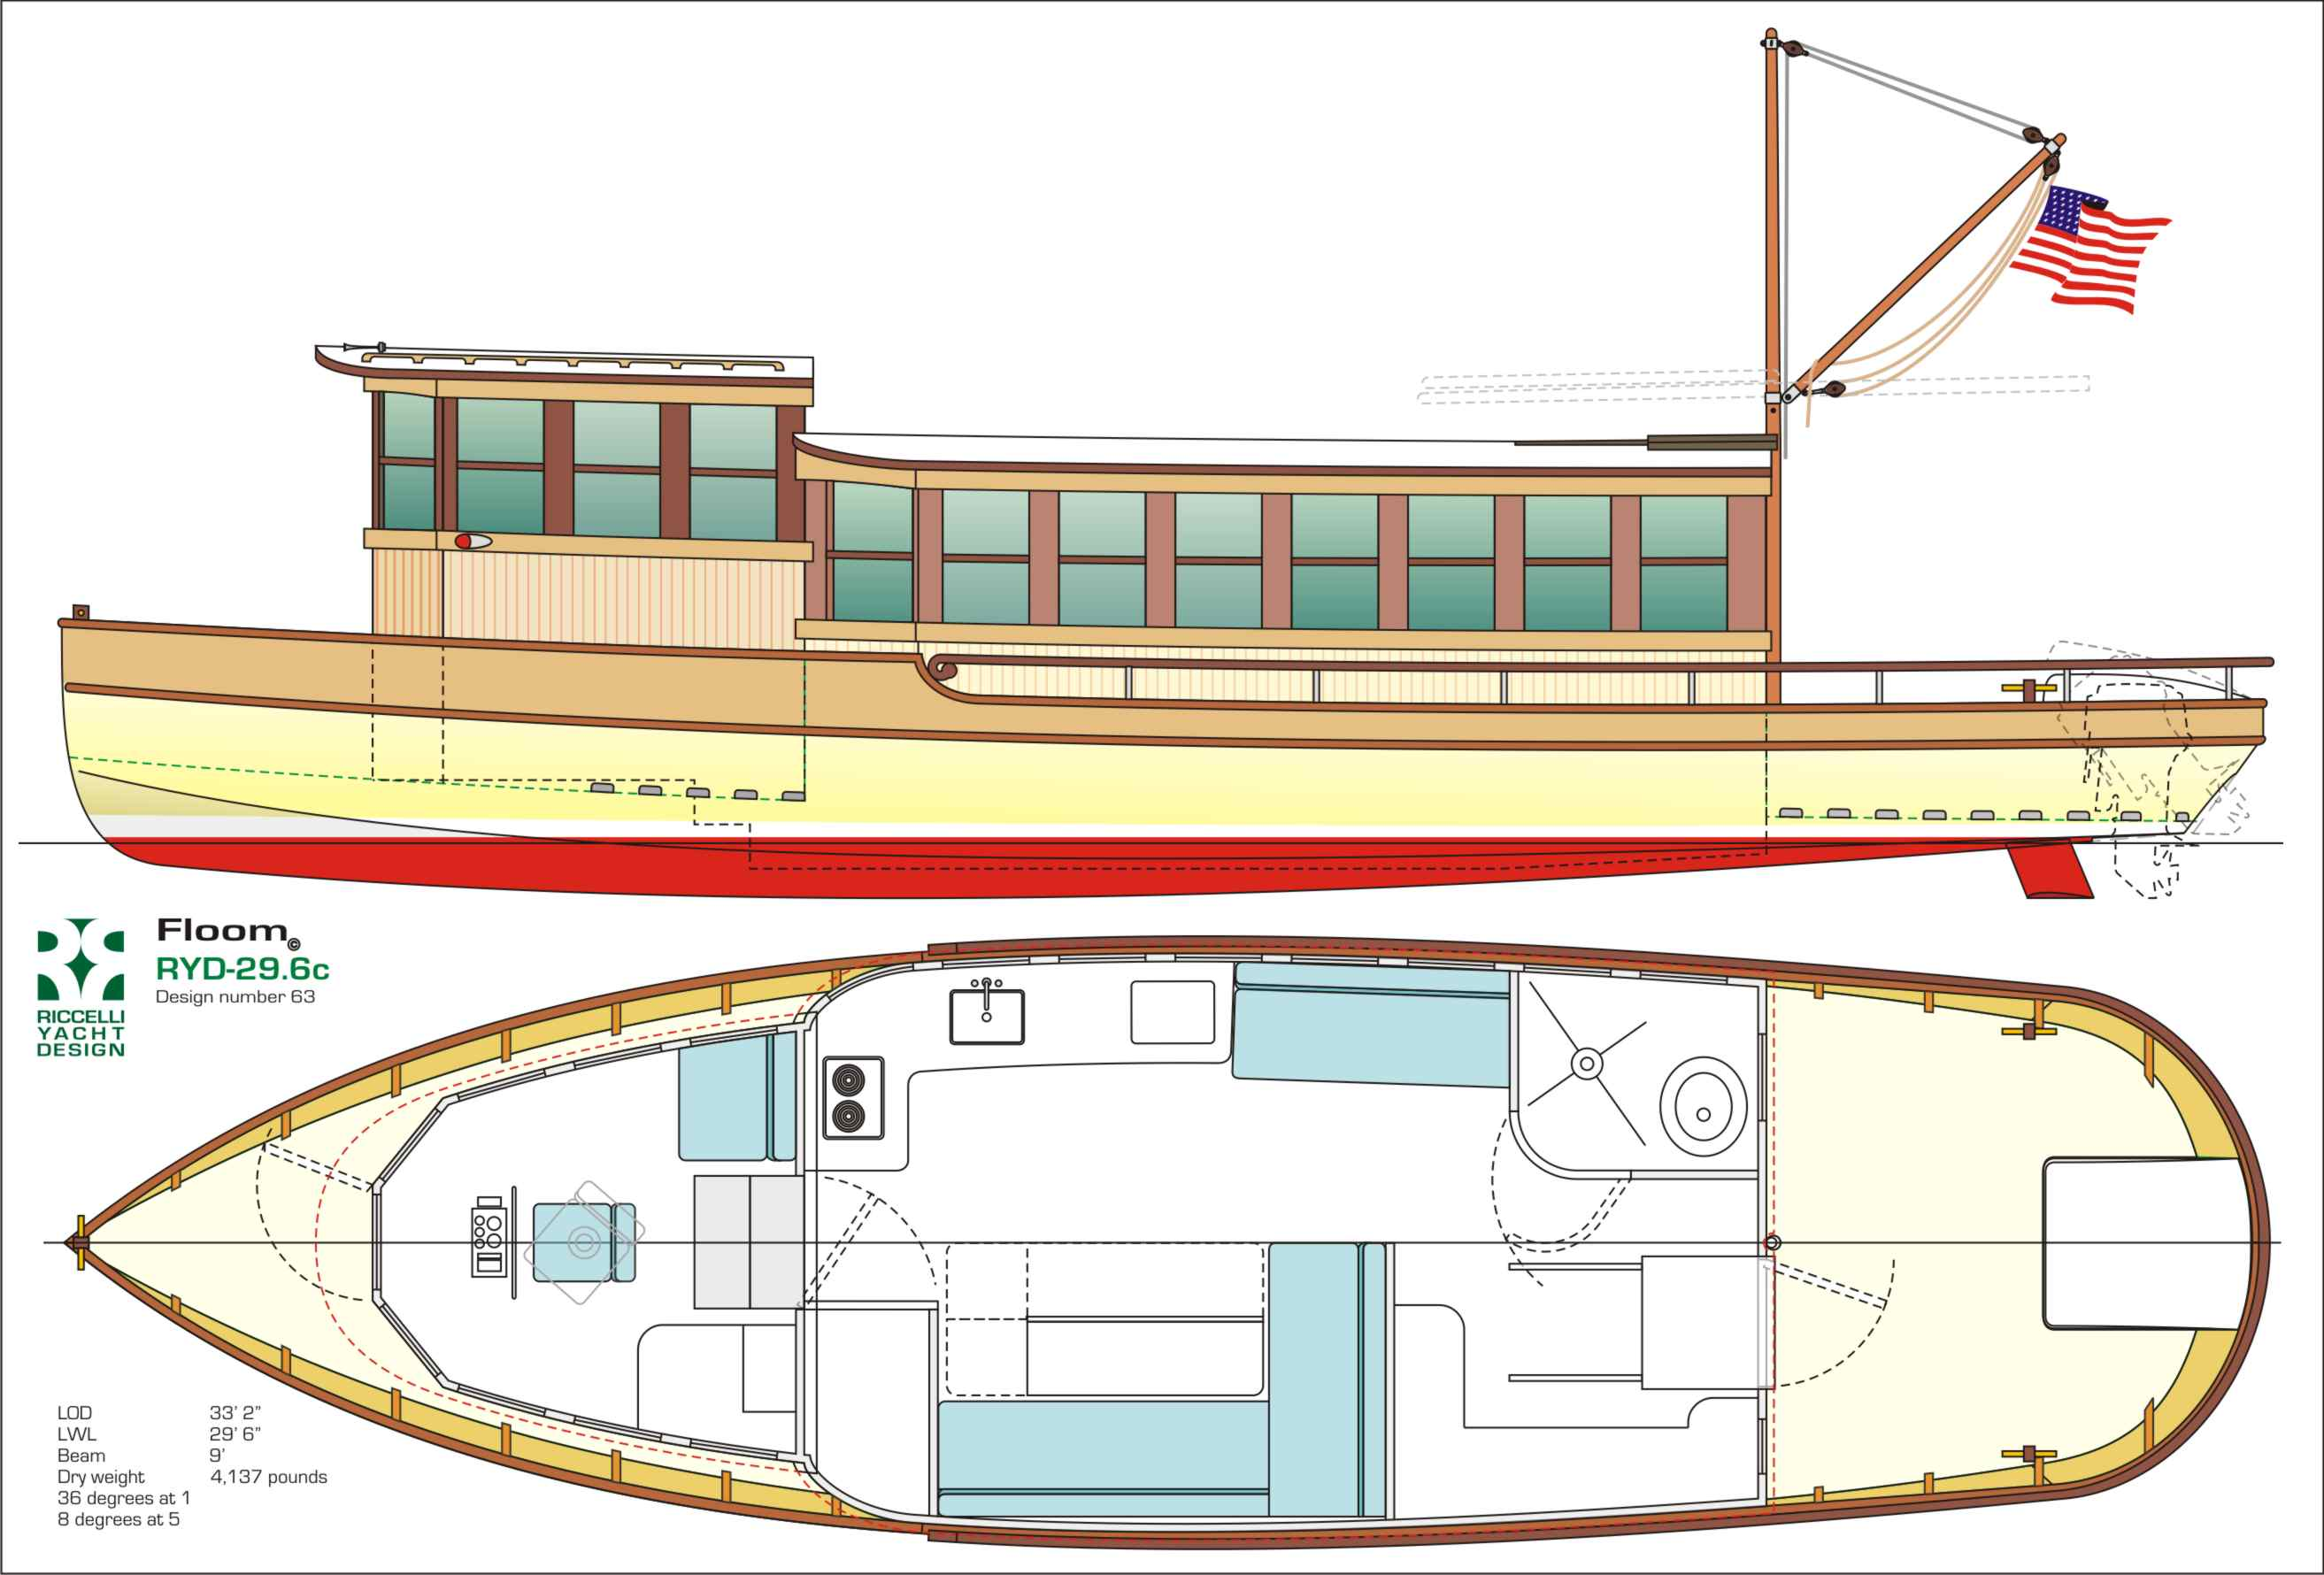 houseboat pontoon design | Boat Design Net